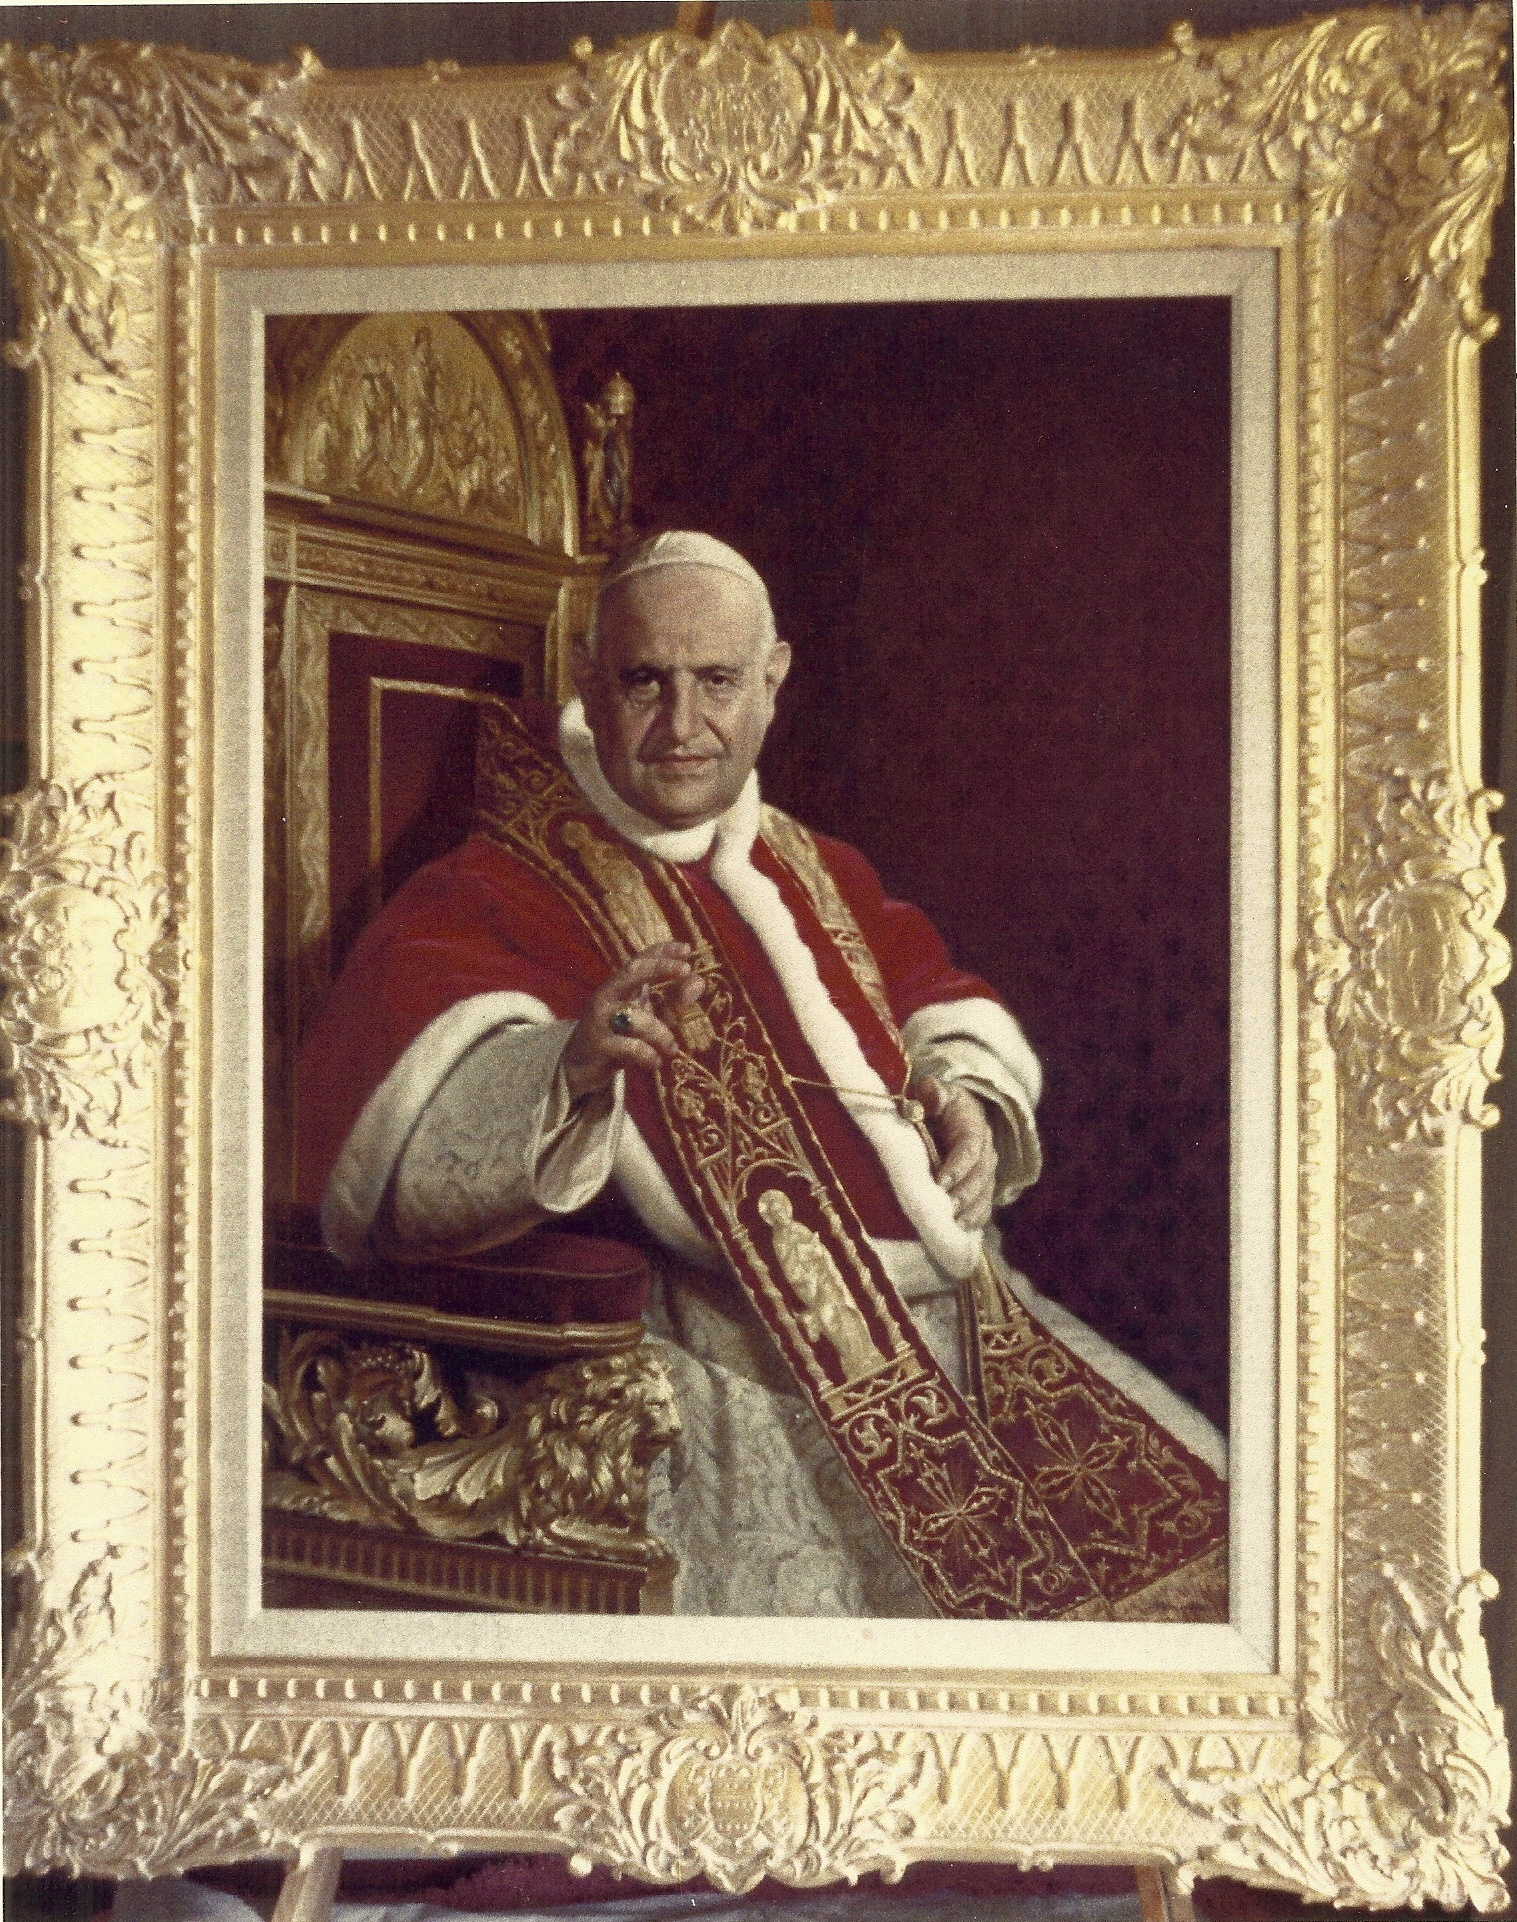 Portrait of Pope John XXIII By Angelo Lanzini, Vatican Museum